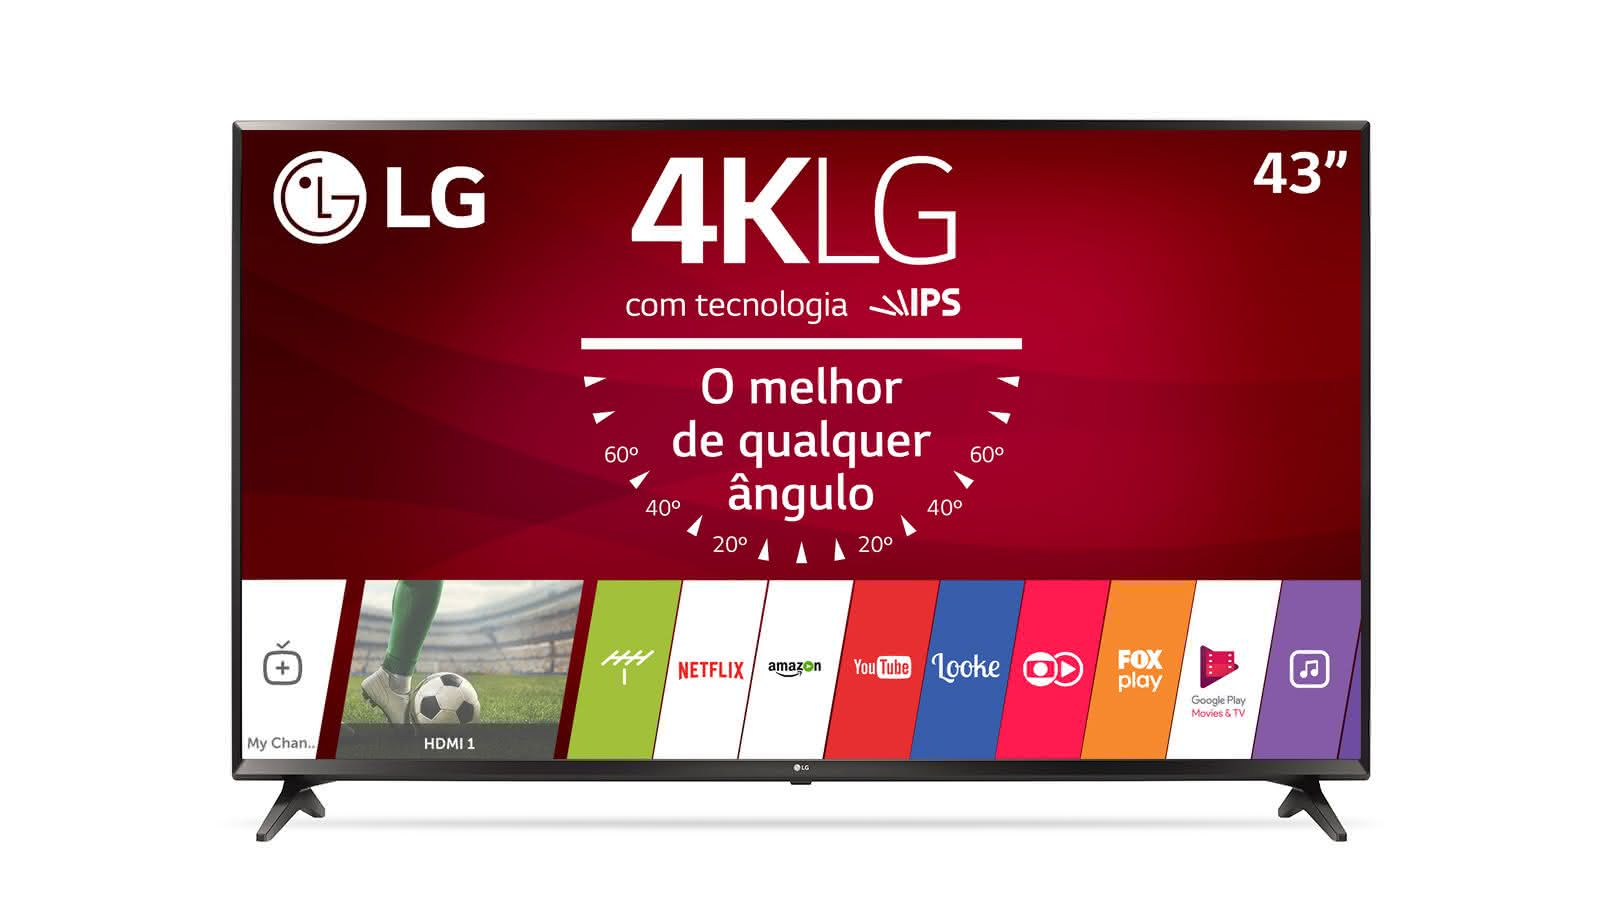 smart tv led 43 ultra hd 4k lg 43uj6300 com sistema webos 3 5 wi fi painel ips hdr quick. Black Bedroom Furniture Sets. Home Design Ideas